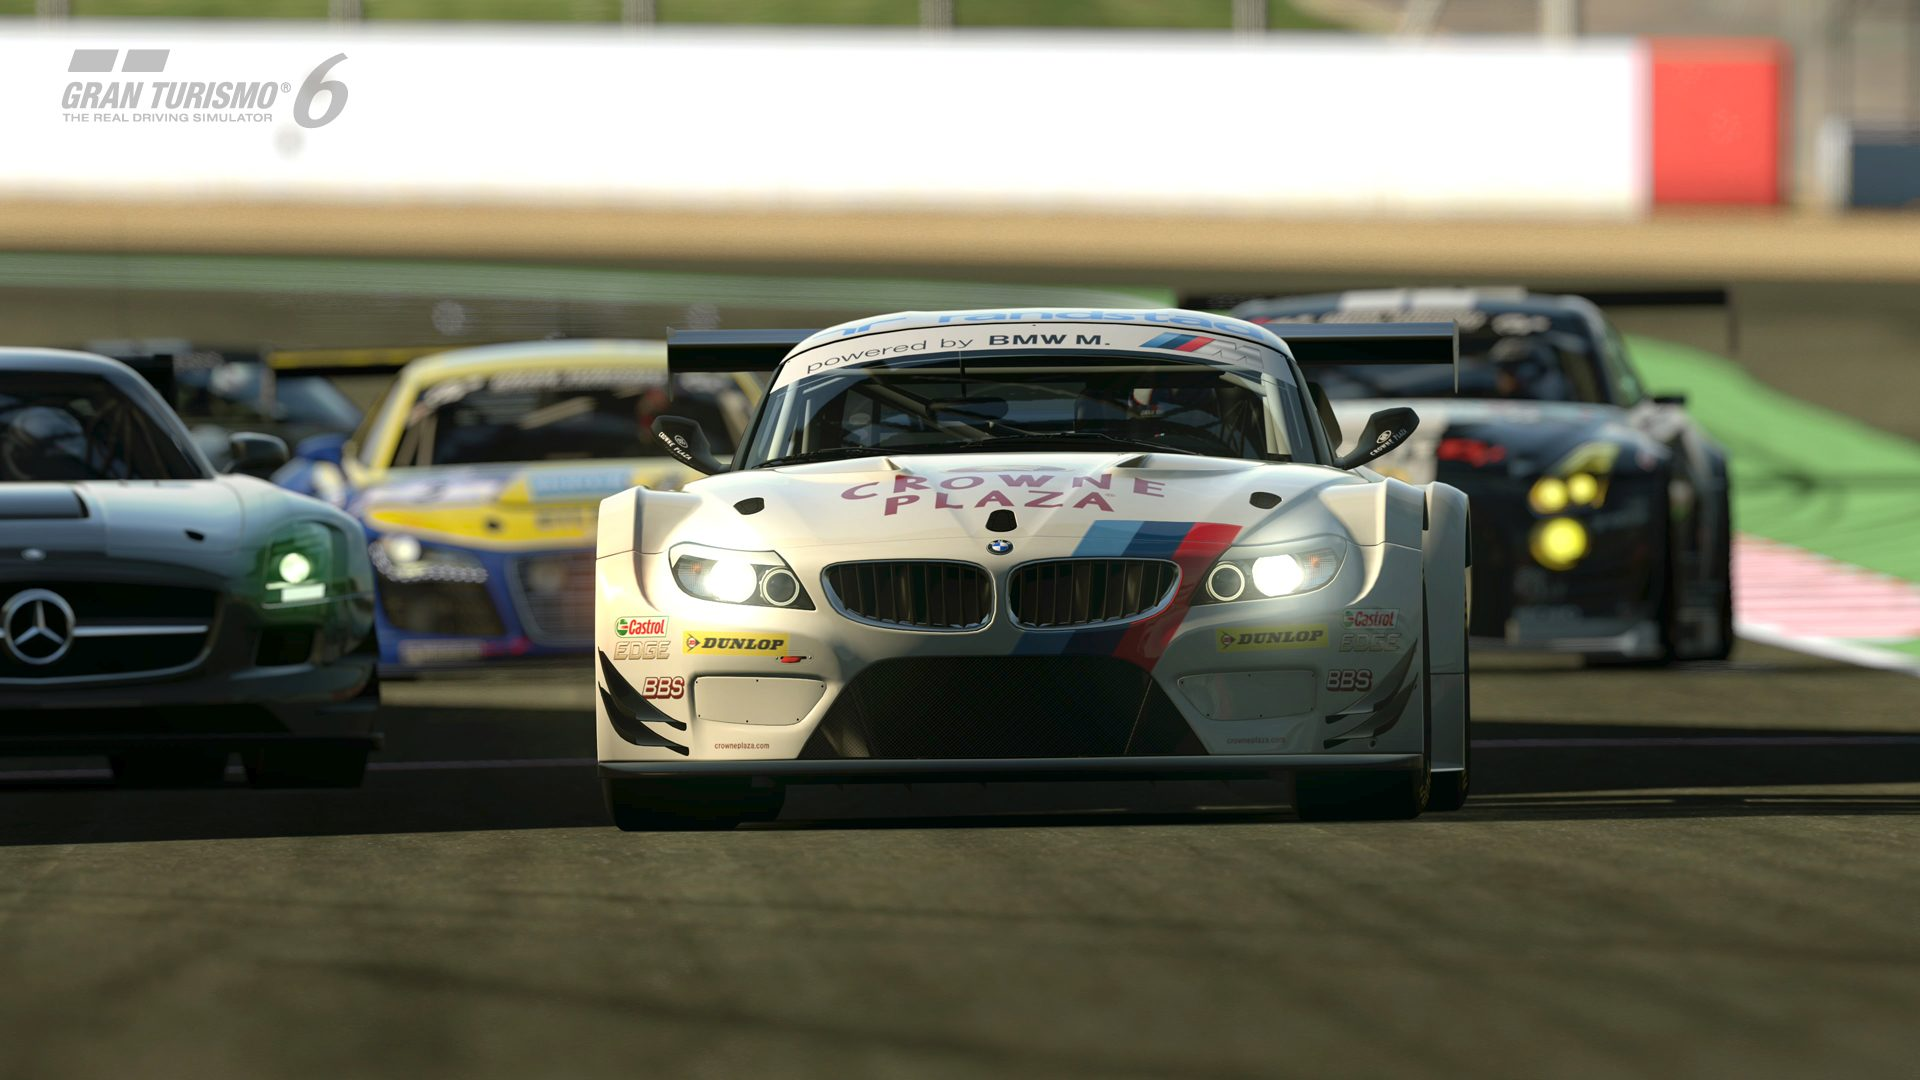 Gran turismo 6 15th anniversary edition announced pre order details revealed